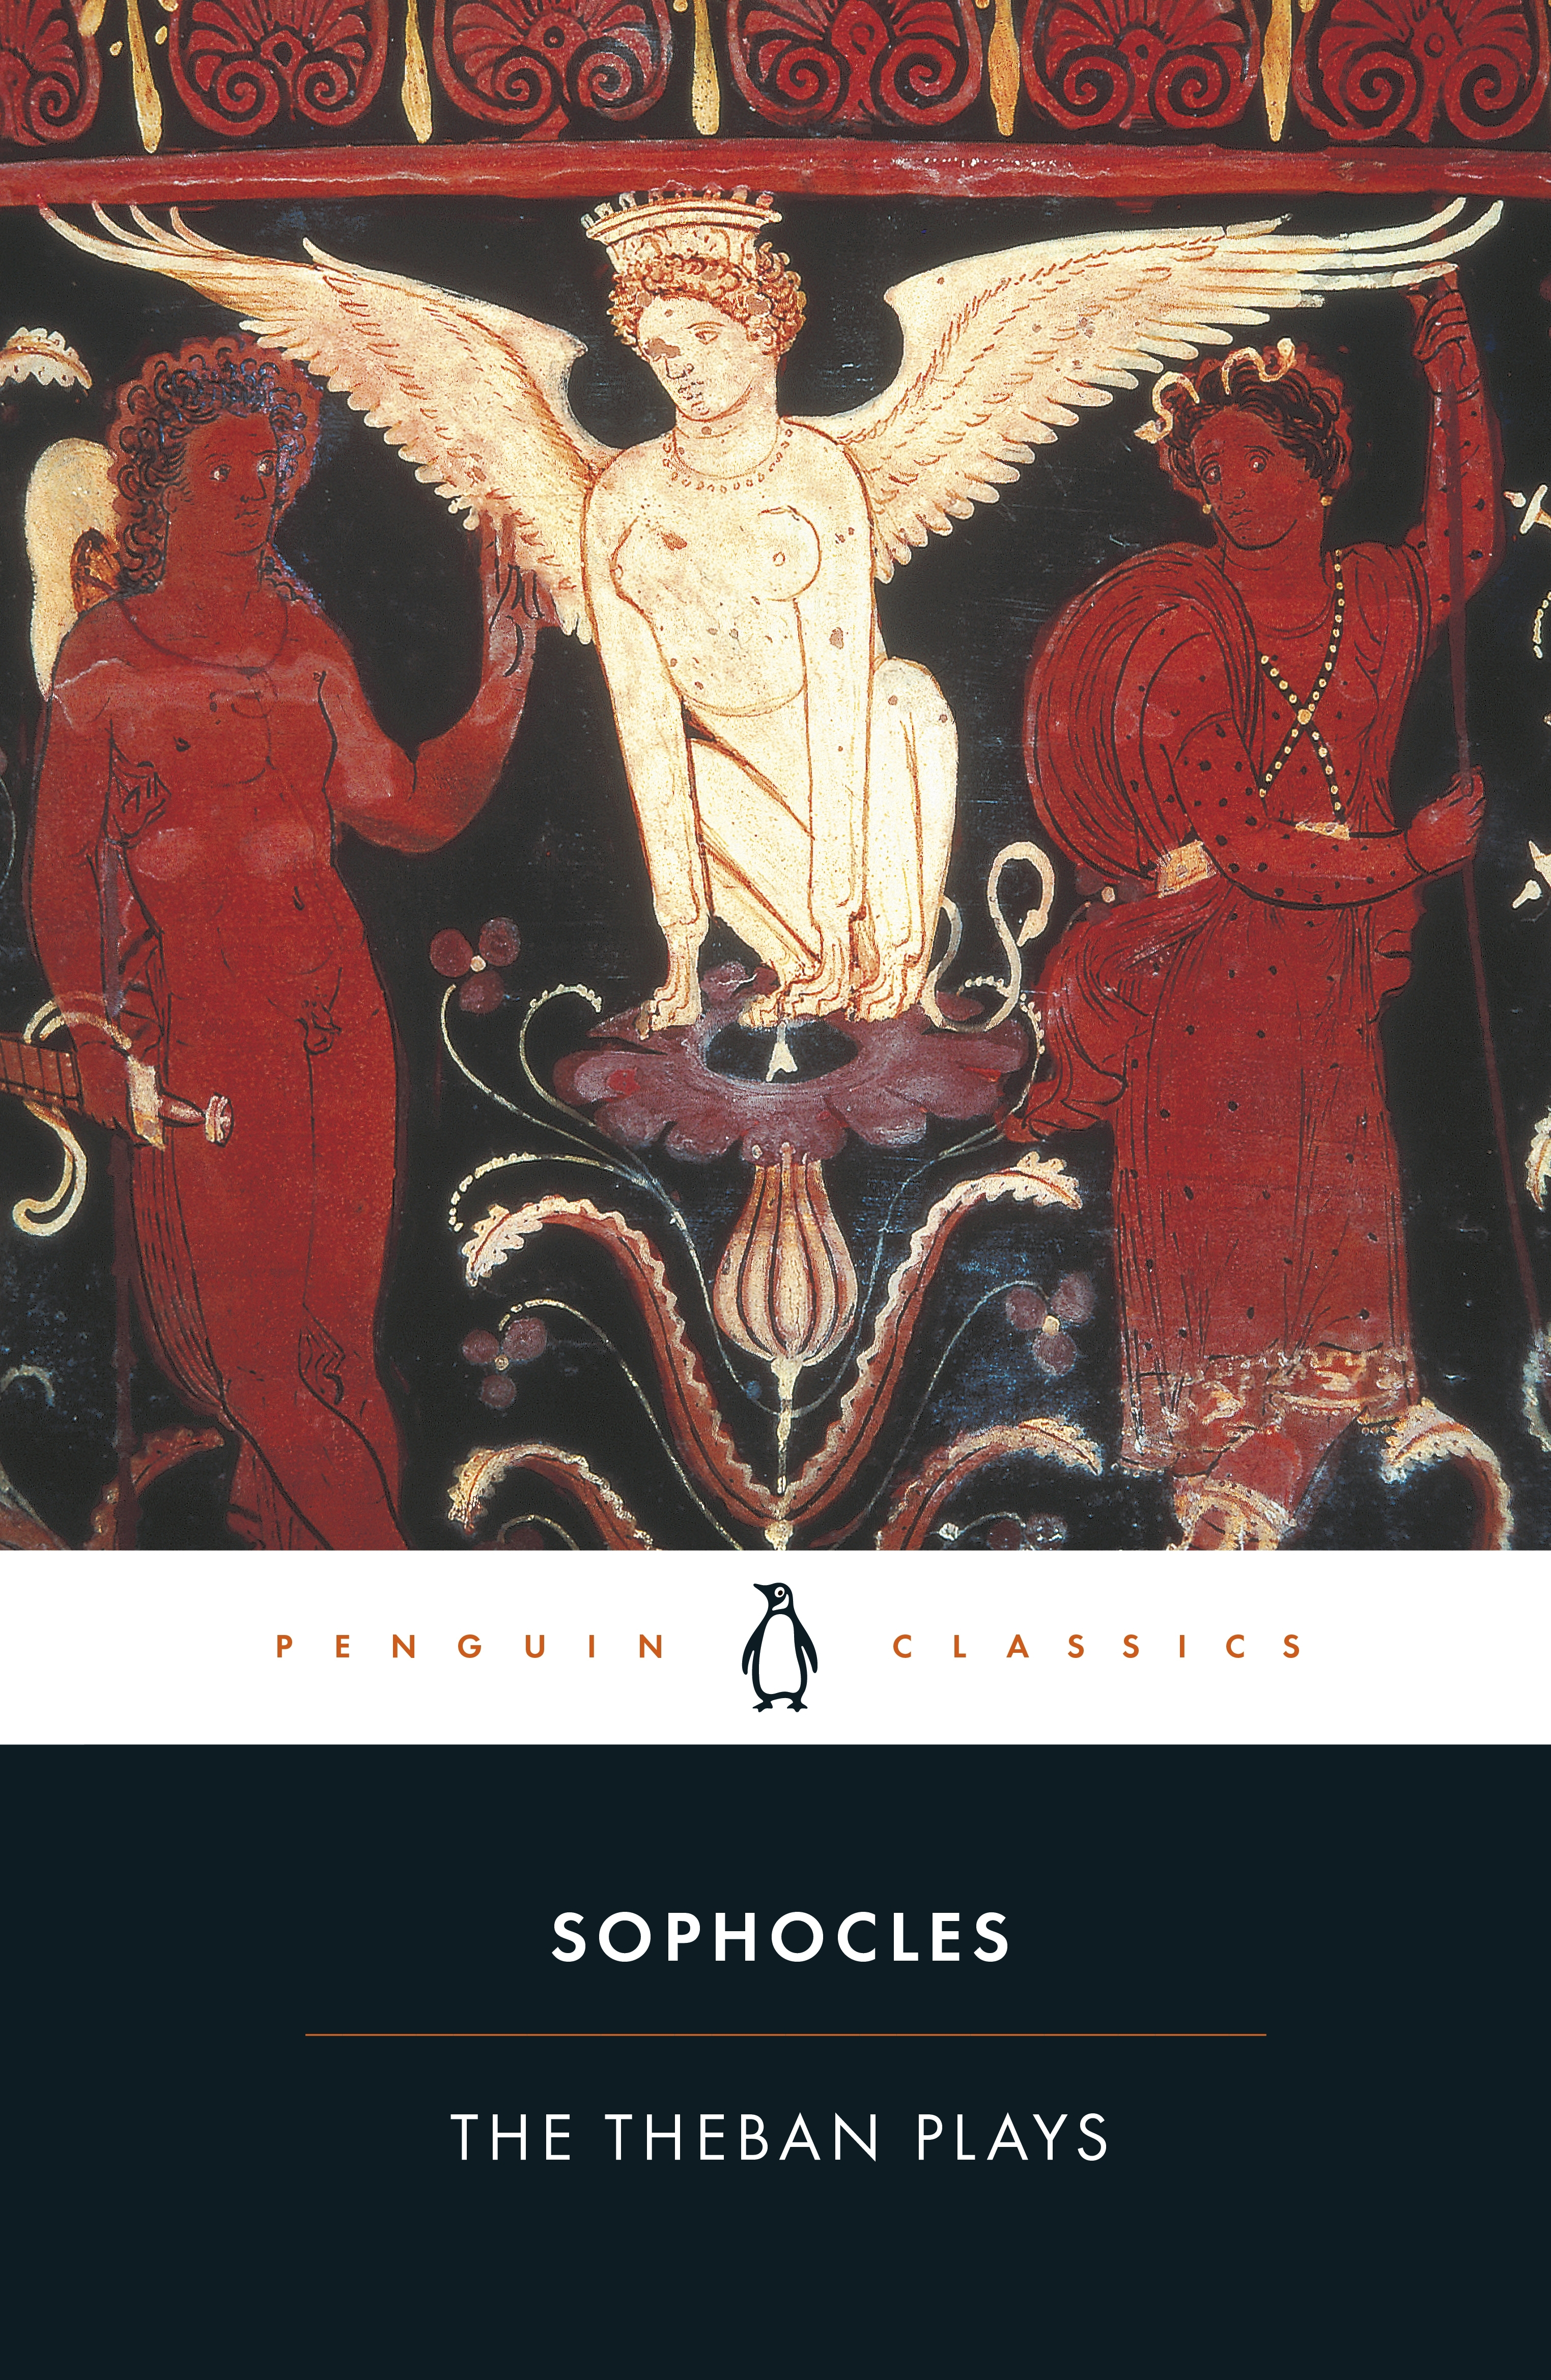 literary analysis of the book oedipus the king by sophocles Oedipus, the king , free study guides and book notes including comprehensive chapter analysis, complete summary analysis, author biography information, character profiles, theme analysis, metaphor analysis, and top ten quotes on classic literature.